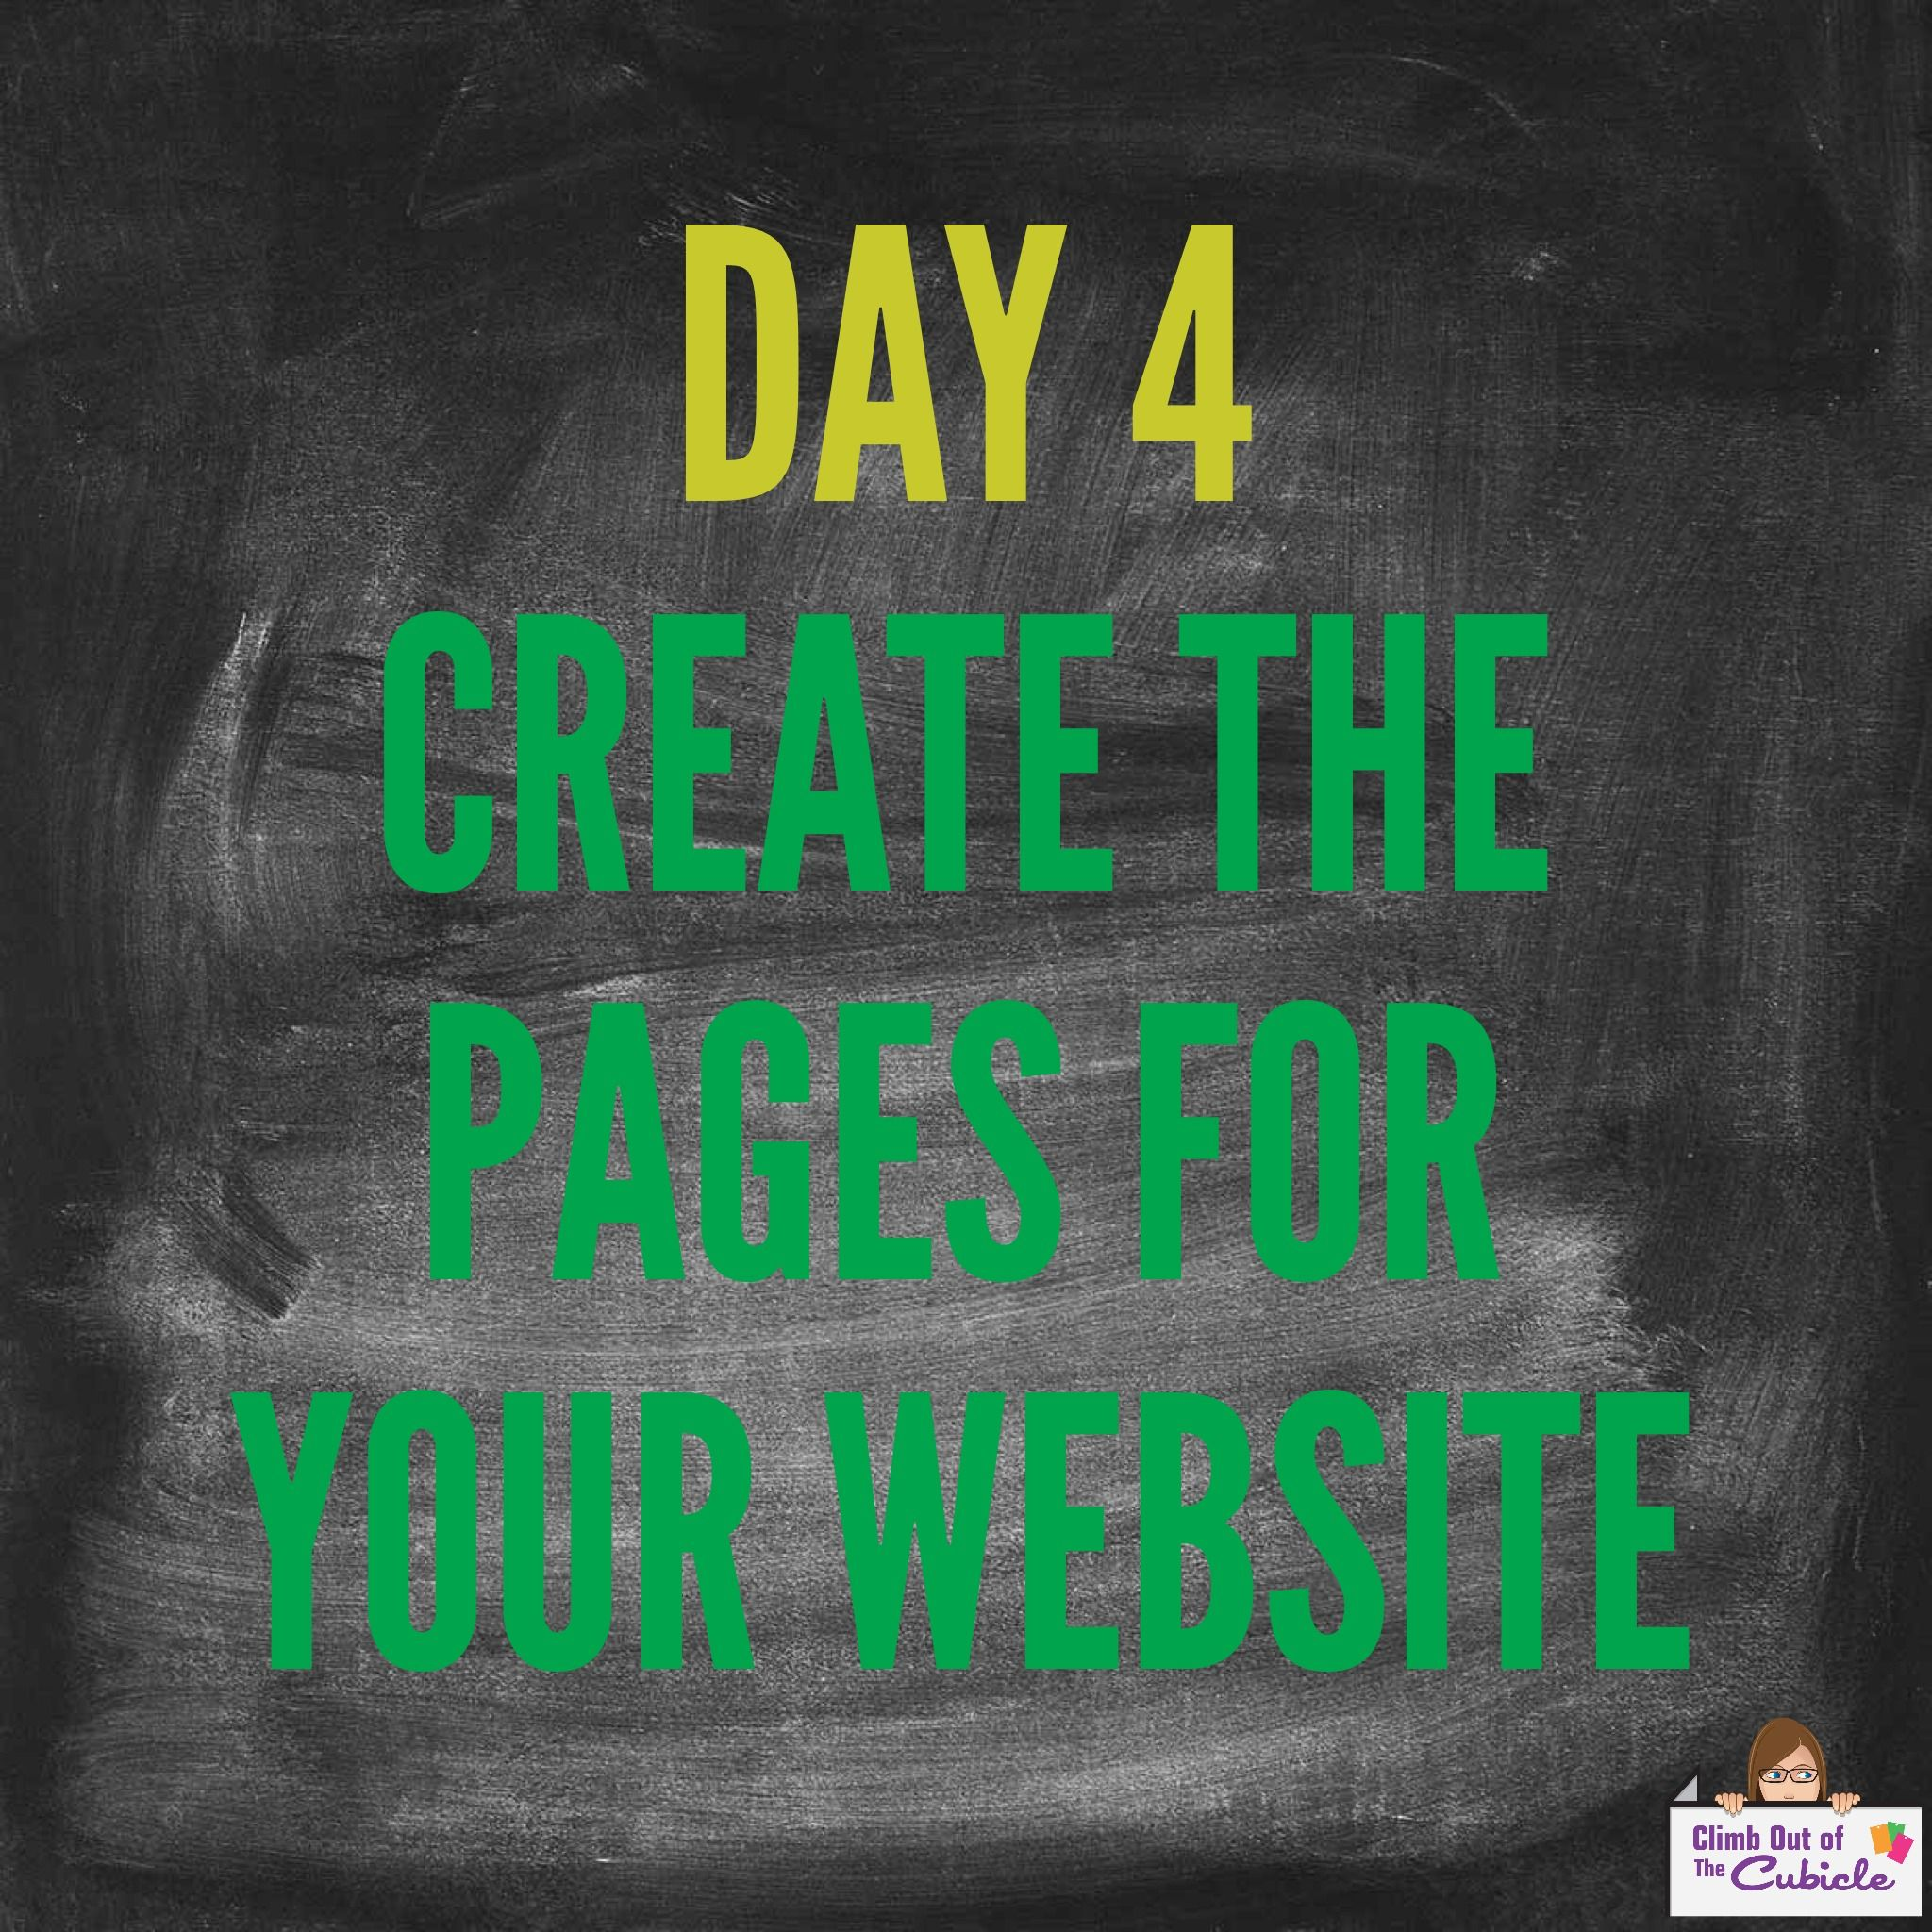 Start a Blog in 15 Days   #blogging #startablog #blog #writing  #website #startablog  #startawebsite  www.climboutofthecubicle.com